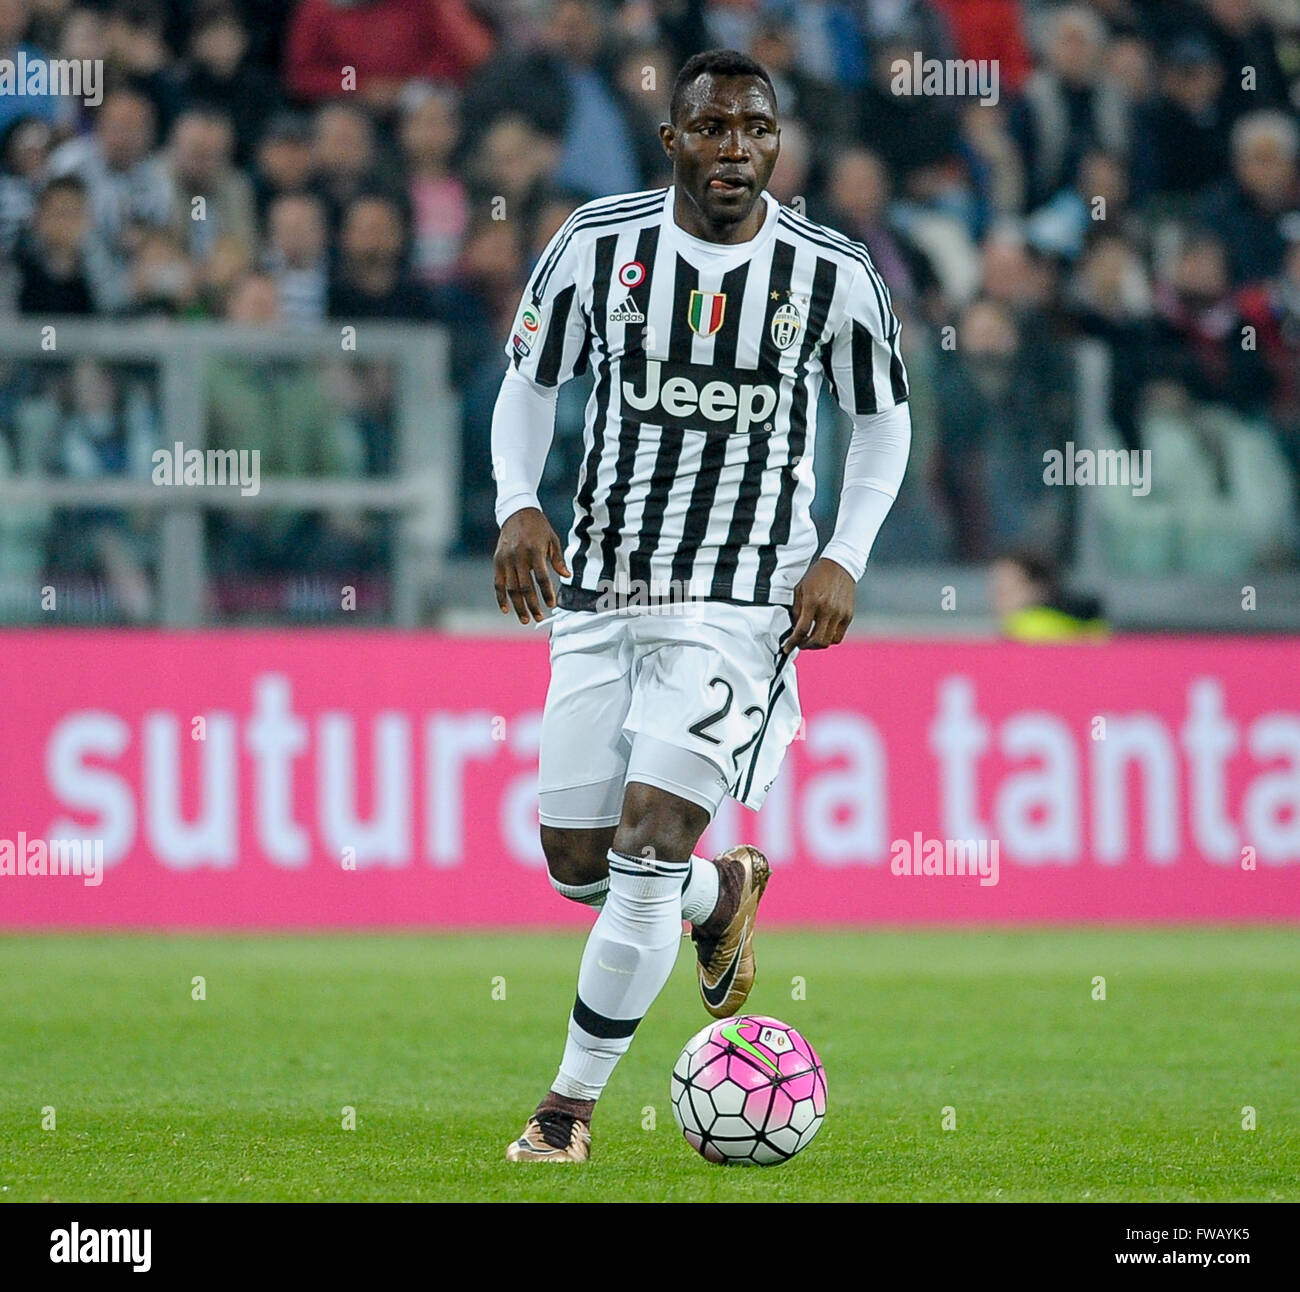 Turin Italy 2 April 2016 Kwadwo Asamoah in action during the